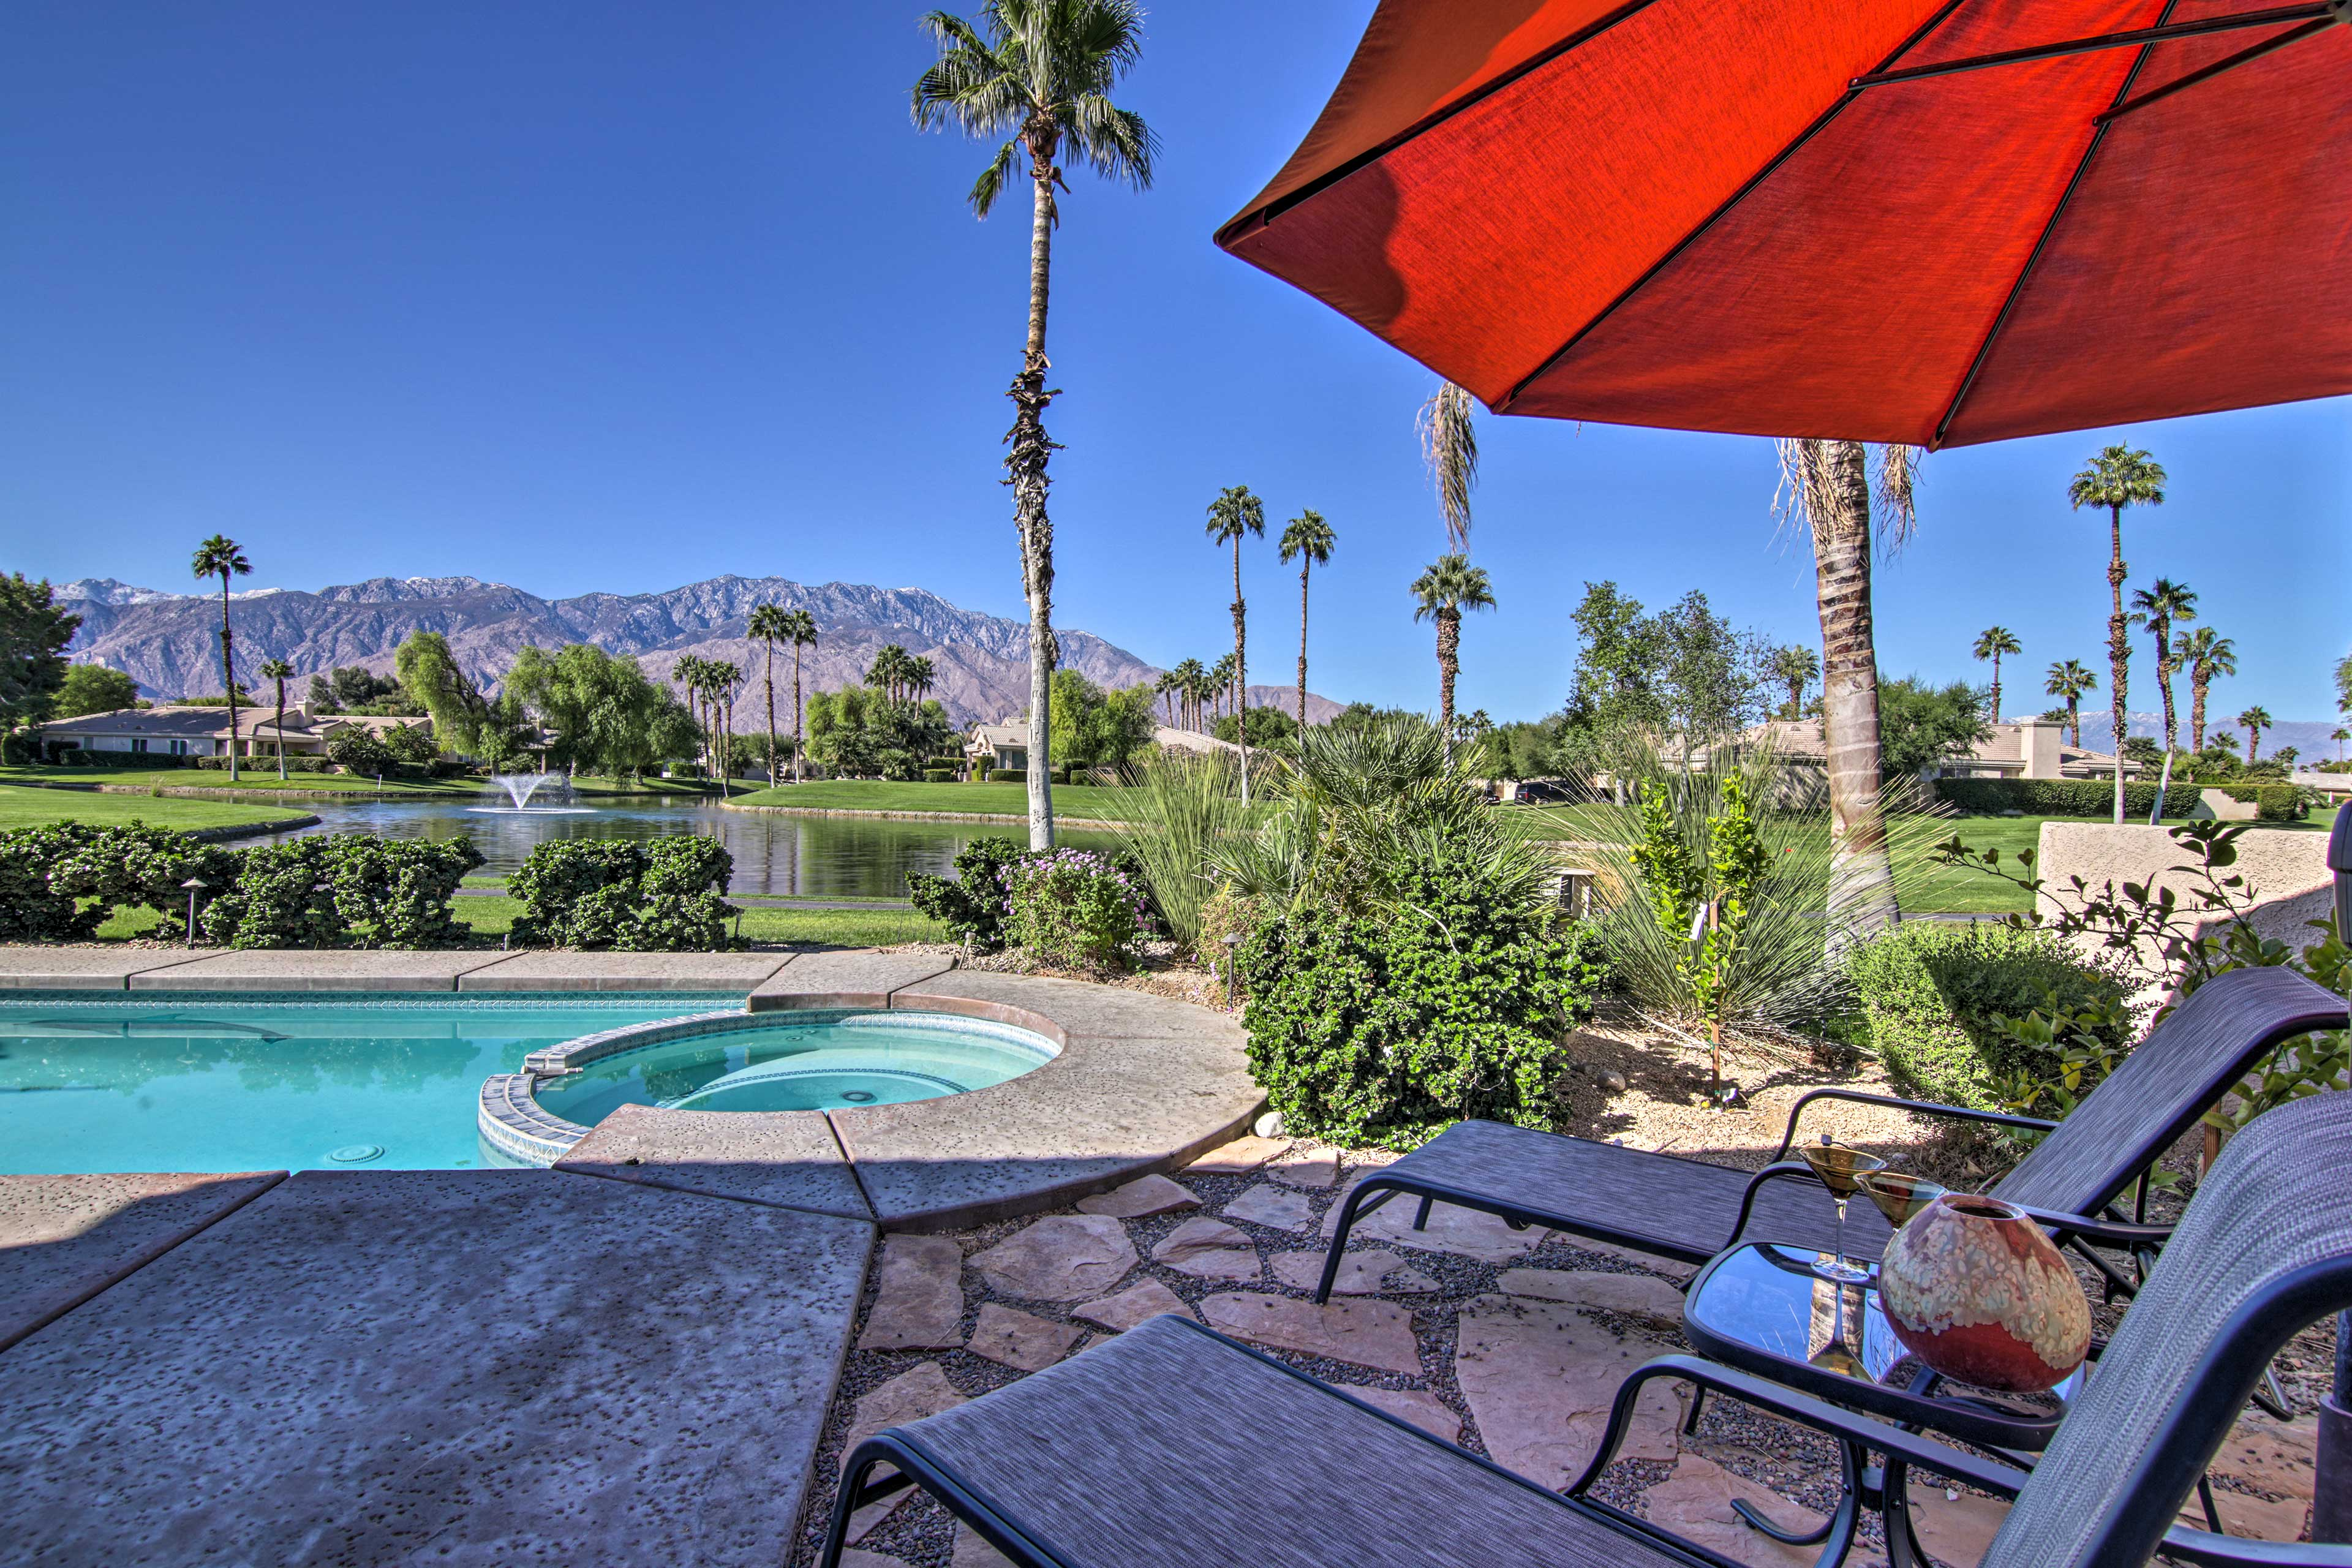 Palm Springs Vacation Rental House   2BR   2.5BA   6 Guests   1,604 Sq Ft